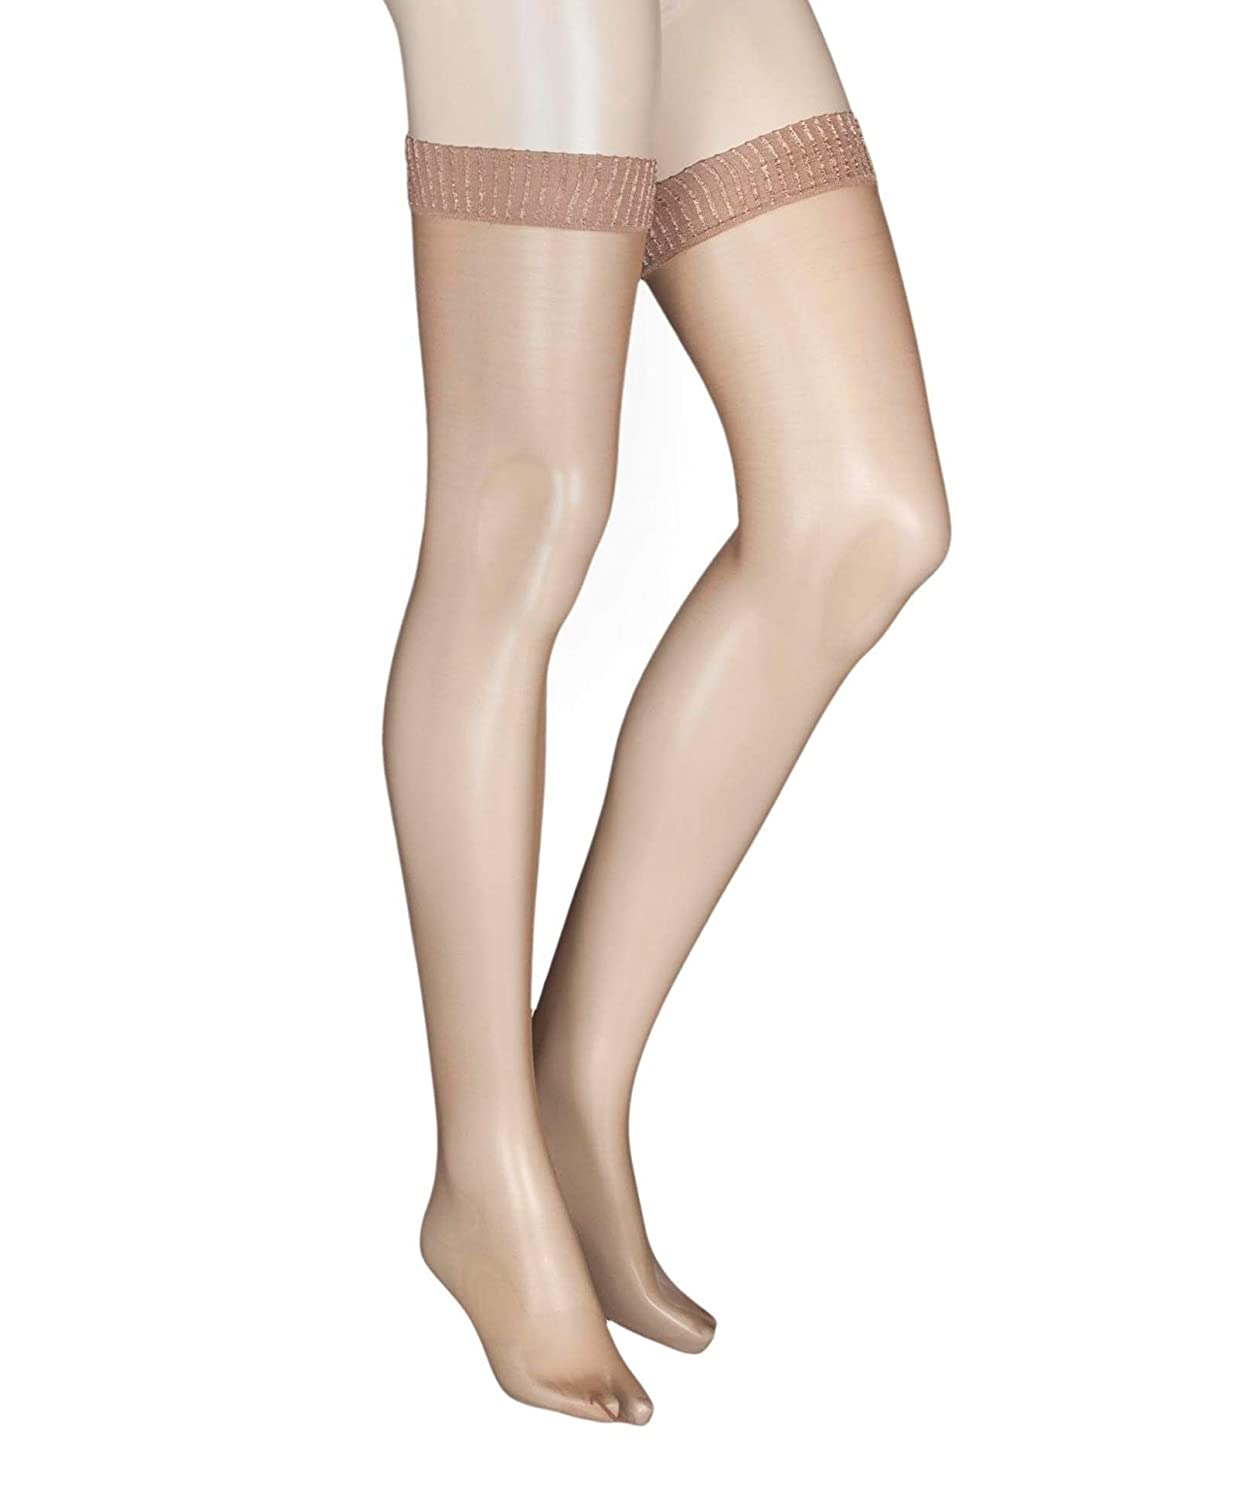 Aristoc 10 Denier Ultra Shine Stockings with Silk Finish